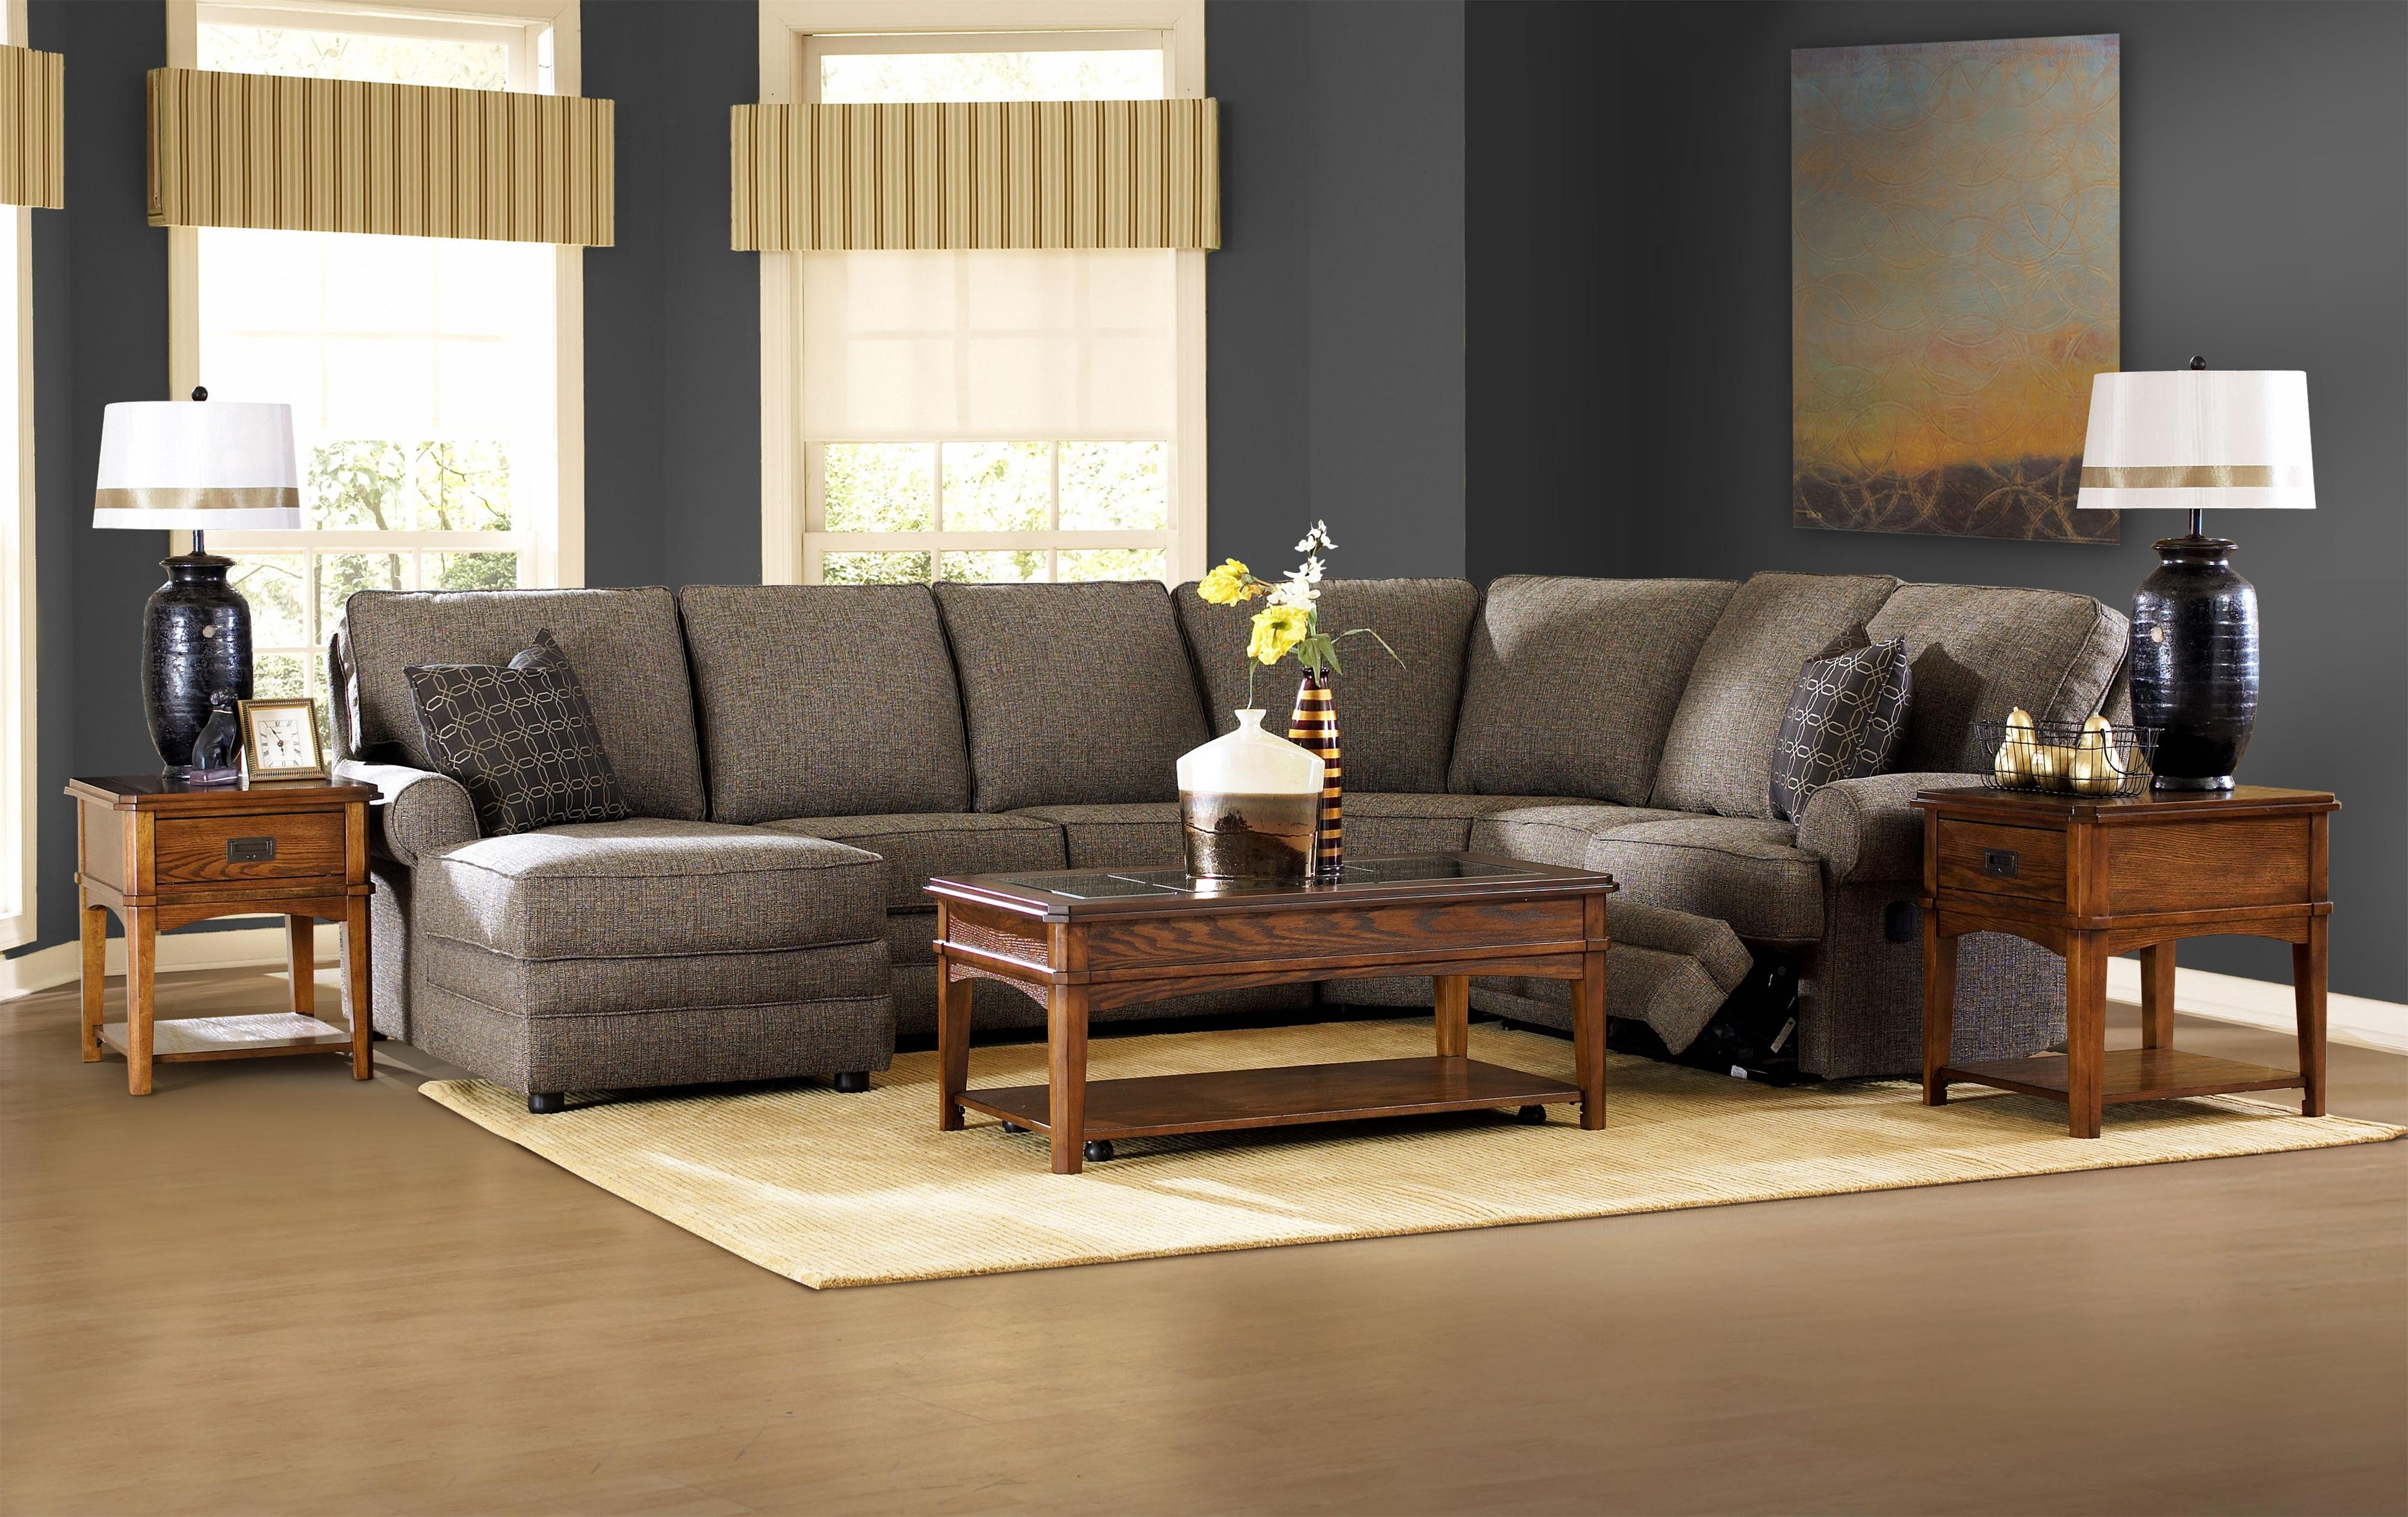 Current Ergonomic Sectional With Chaise And Recliner For Living Room Intended For Sectionals With Chaise And Recliner (View 1 of 15)